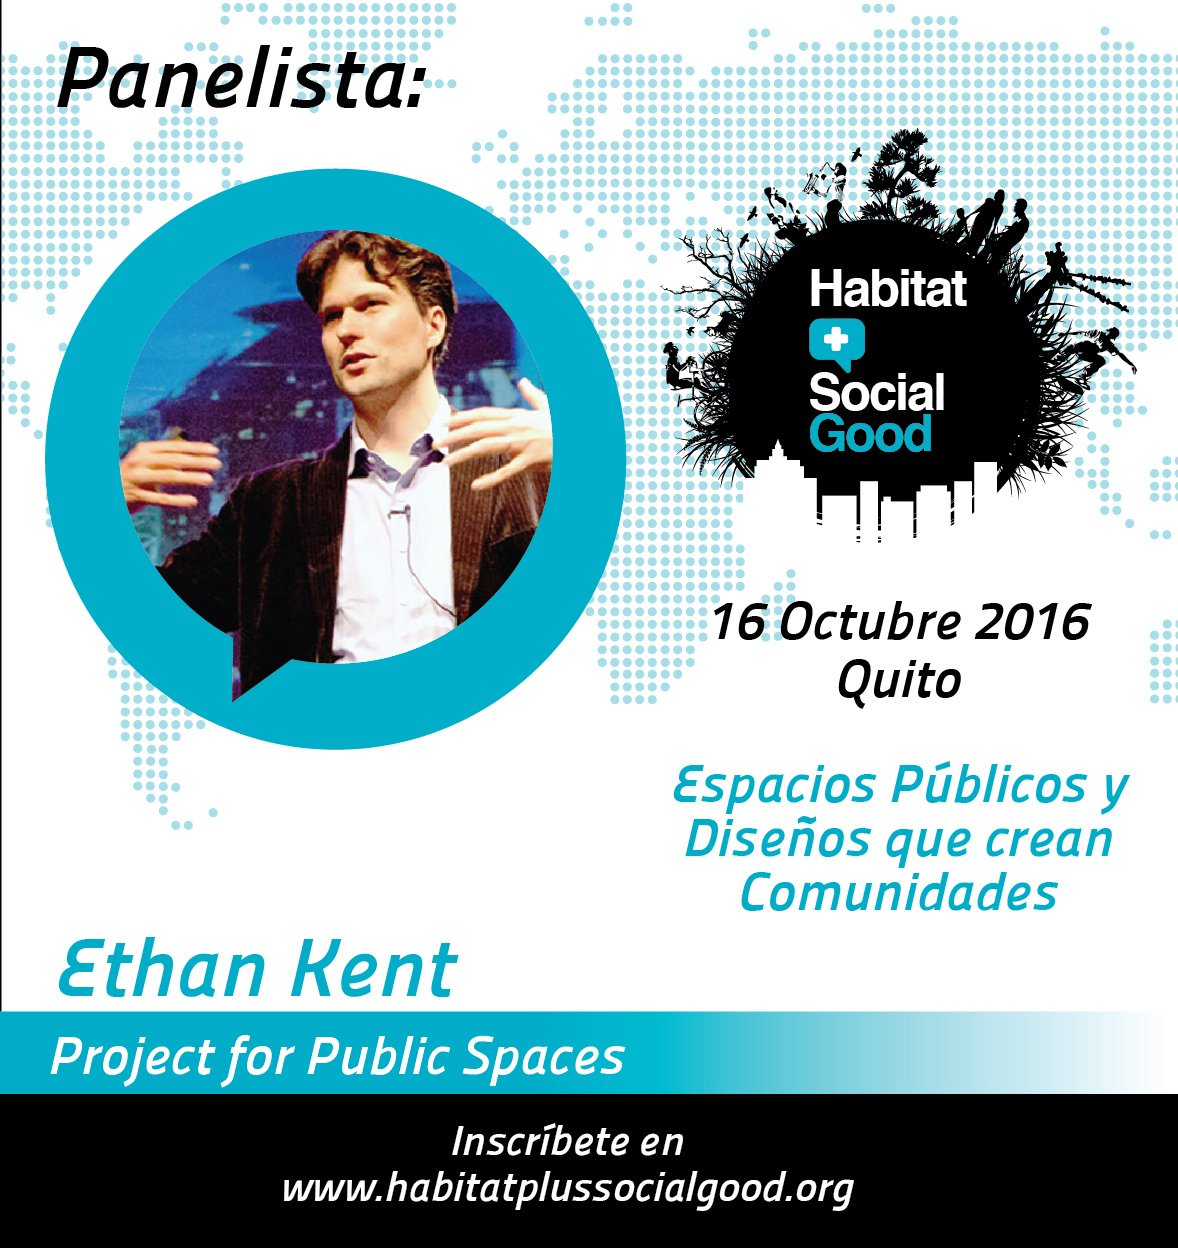 @ebkent de @PPS_Placemaking es otro de los panelistas de #HabitatSocialGood ¡No te pierdas el evento de mañana!  https://t.co/jD7vRRp3Bz https://t.co/giEla7ZZJa